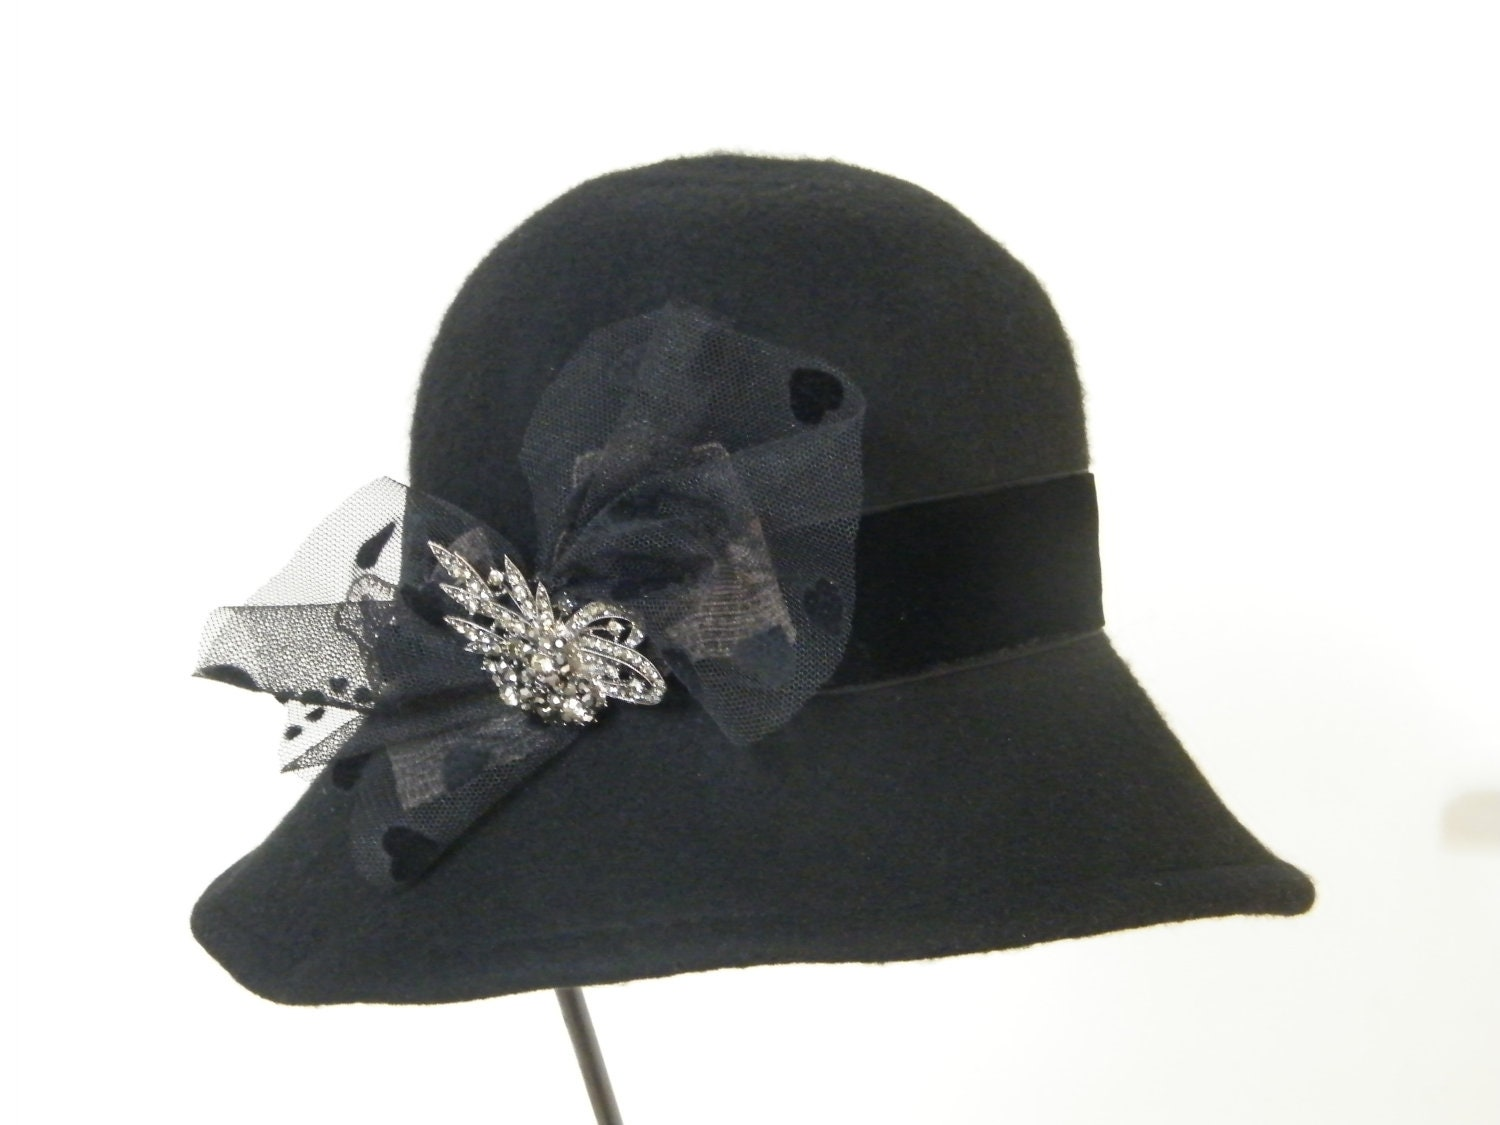 Downton Abbey black felt hat - large winter hat, cloche 20's style hat U.K. - RanaHats